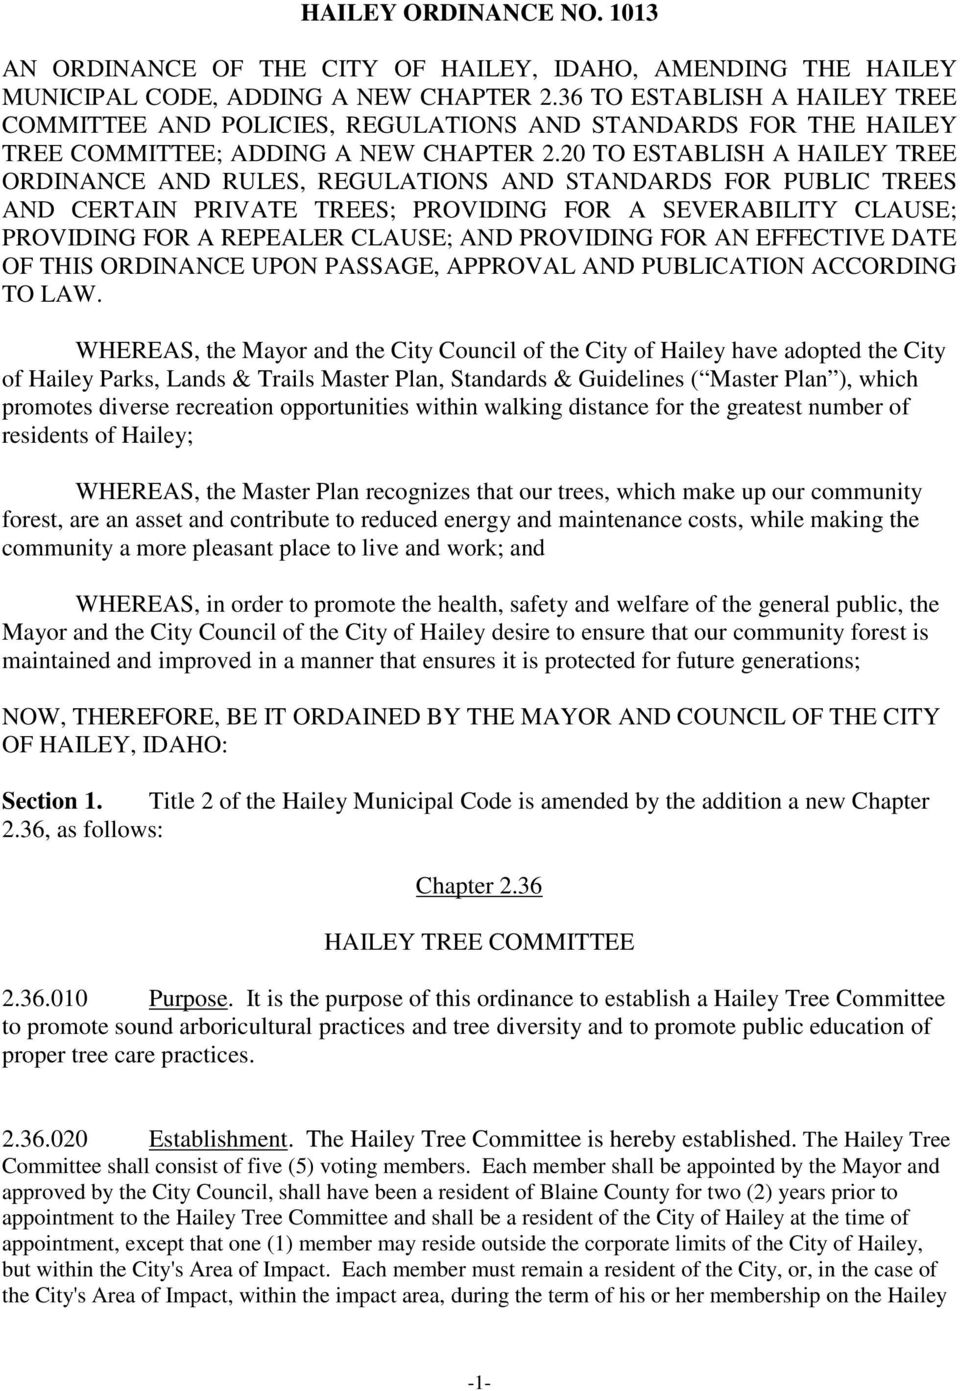 20 TO ESTABLISH A HAILEY TREE ORDINANCE AND RULES, REGULATIONS AND STANDARDS FOR PUBLIC TREES AND CERTAIN PRIVATE TREES; PROVIDING FOR A SEVERABILITY CLAUSE; PROVIDING FOR A REPEALER CLAUSE; AND